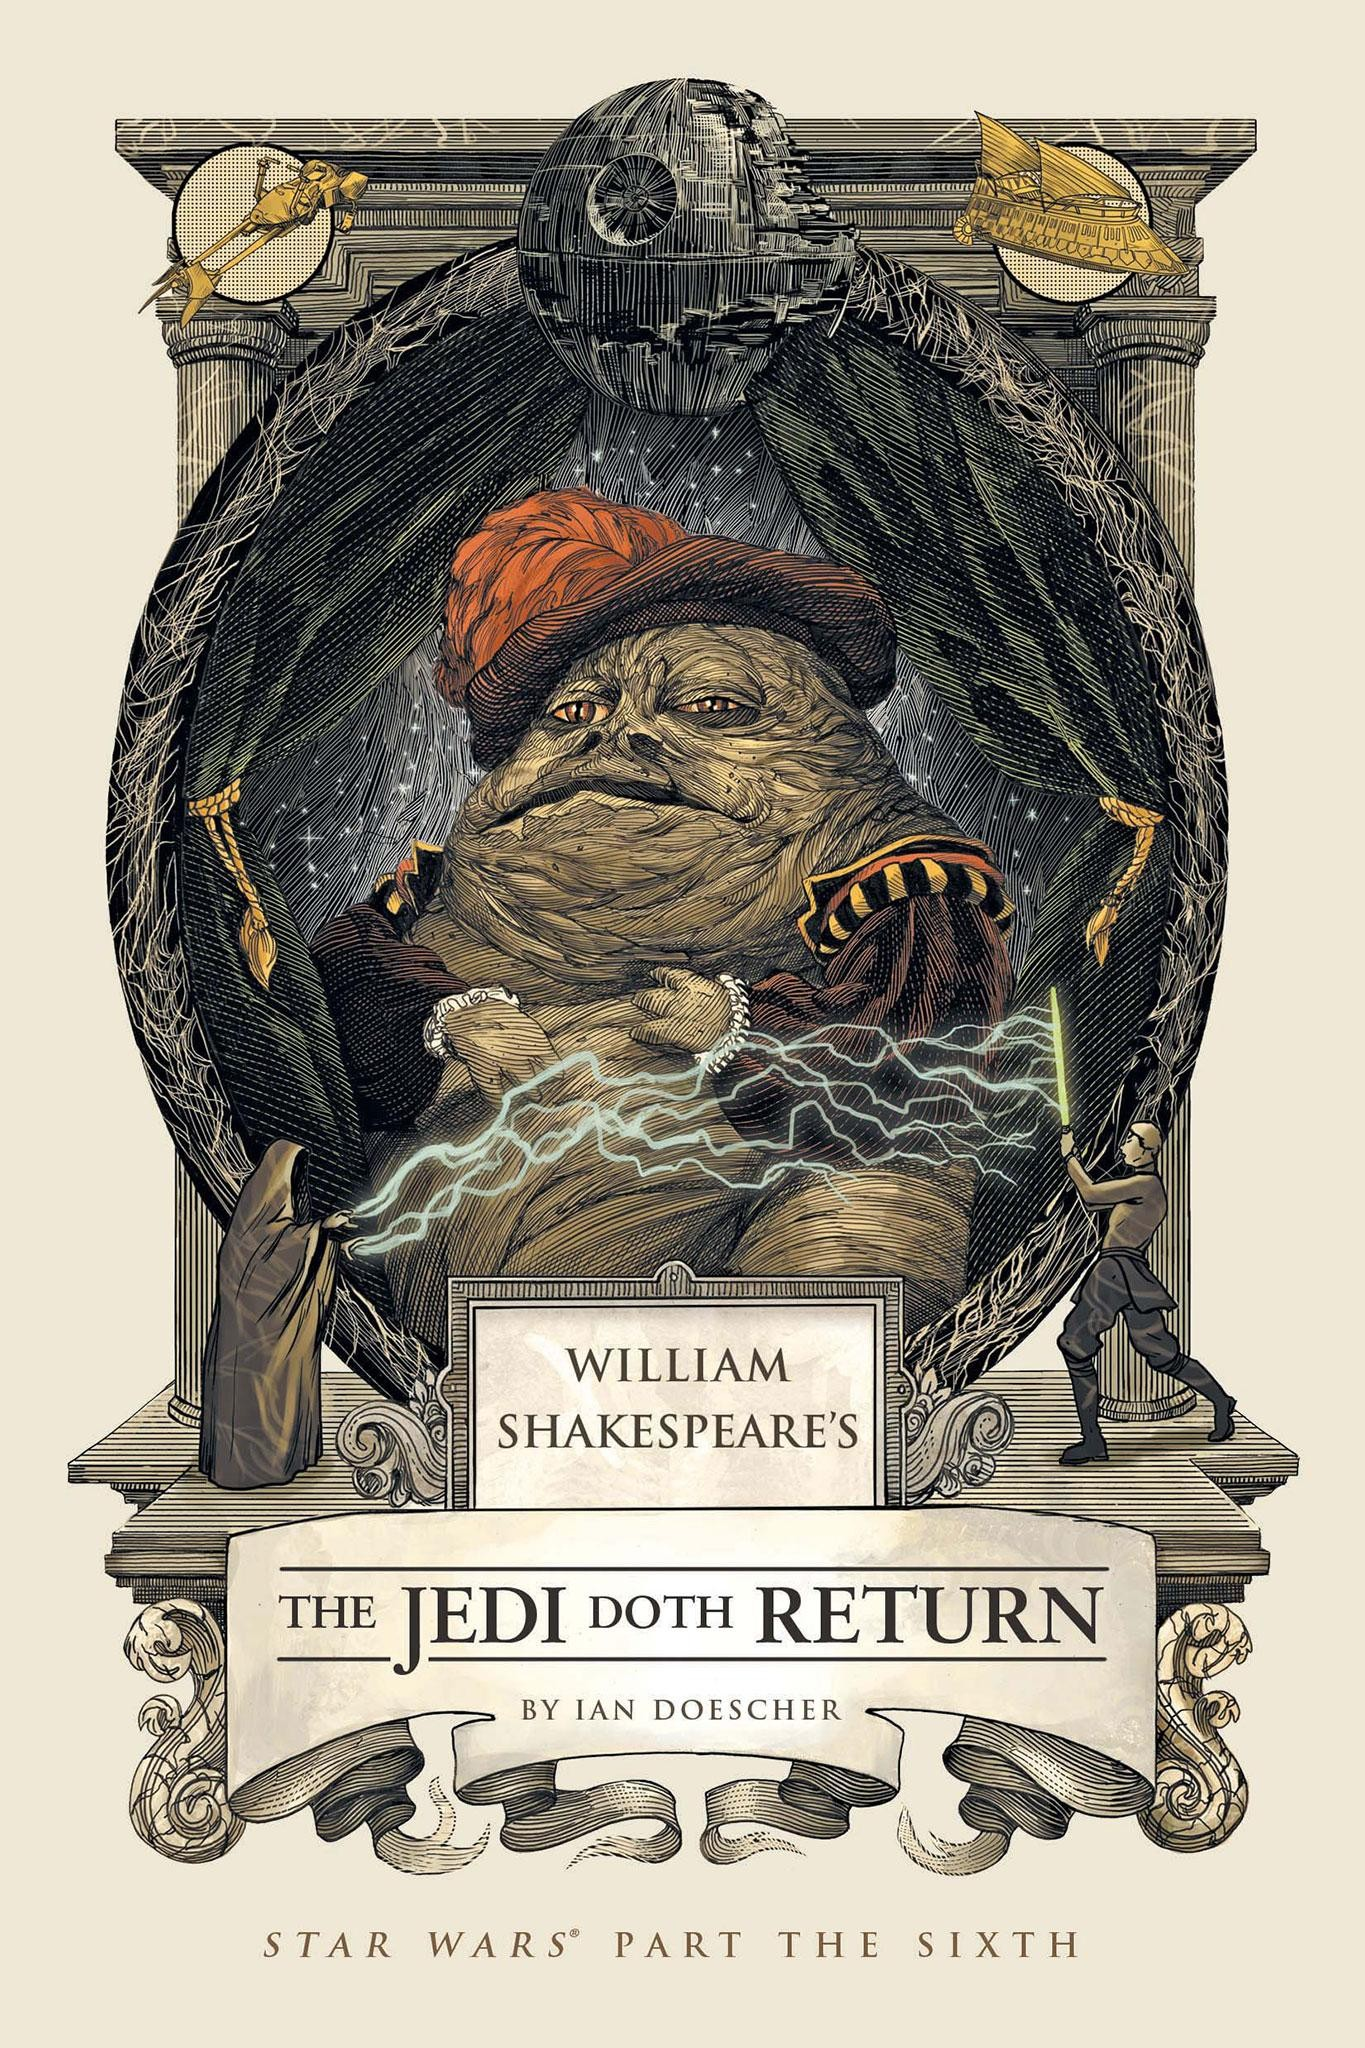 'The Jedi Doth Return' Trailer Completes Shakespeare's 'Star Wars' Saga